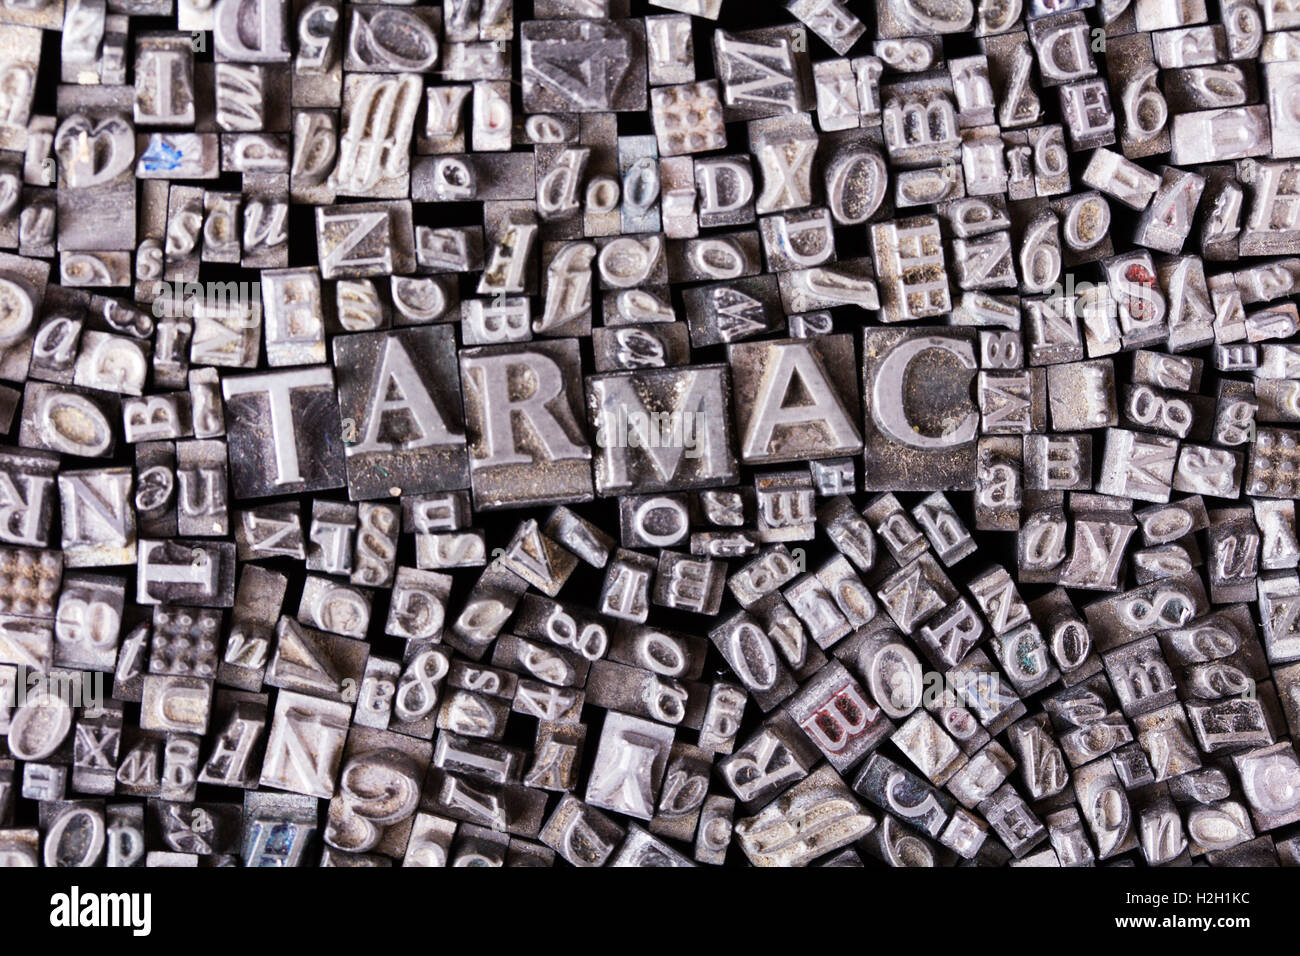 Close up of old used metal typeset letters with the word tarmac - Stock Image